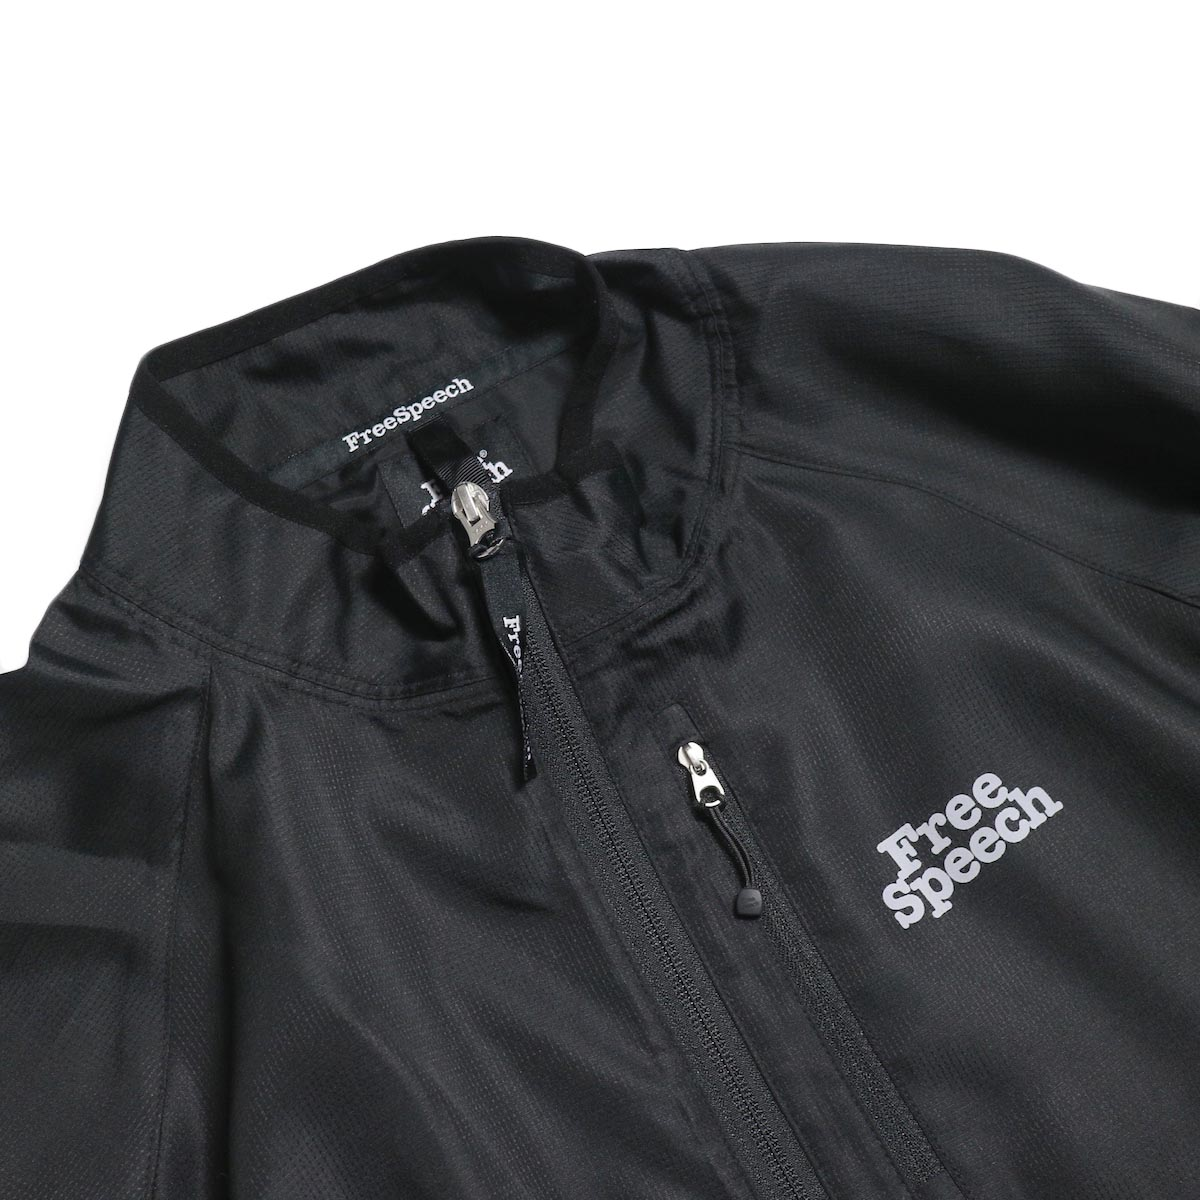 Free Speech / Light Zip Blouson -Black 襟